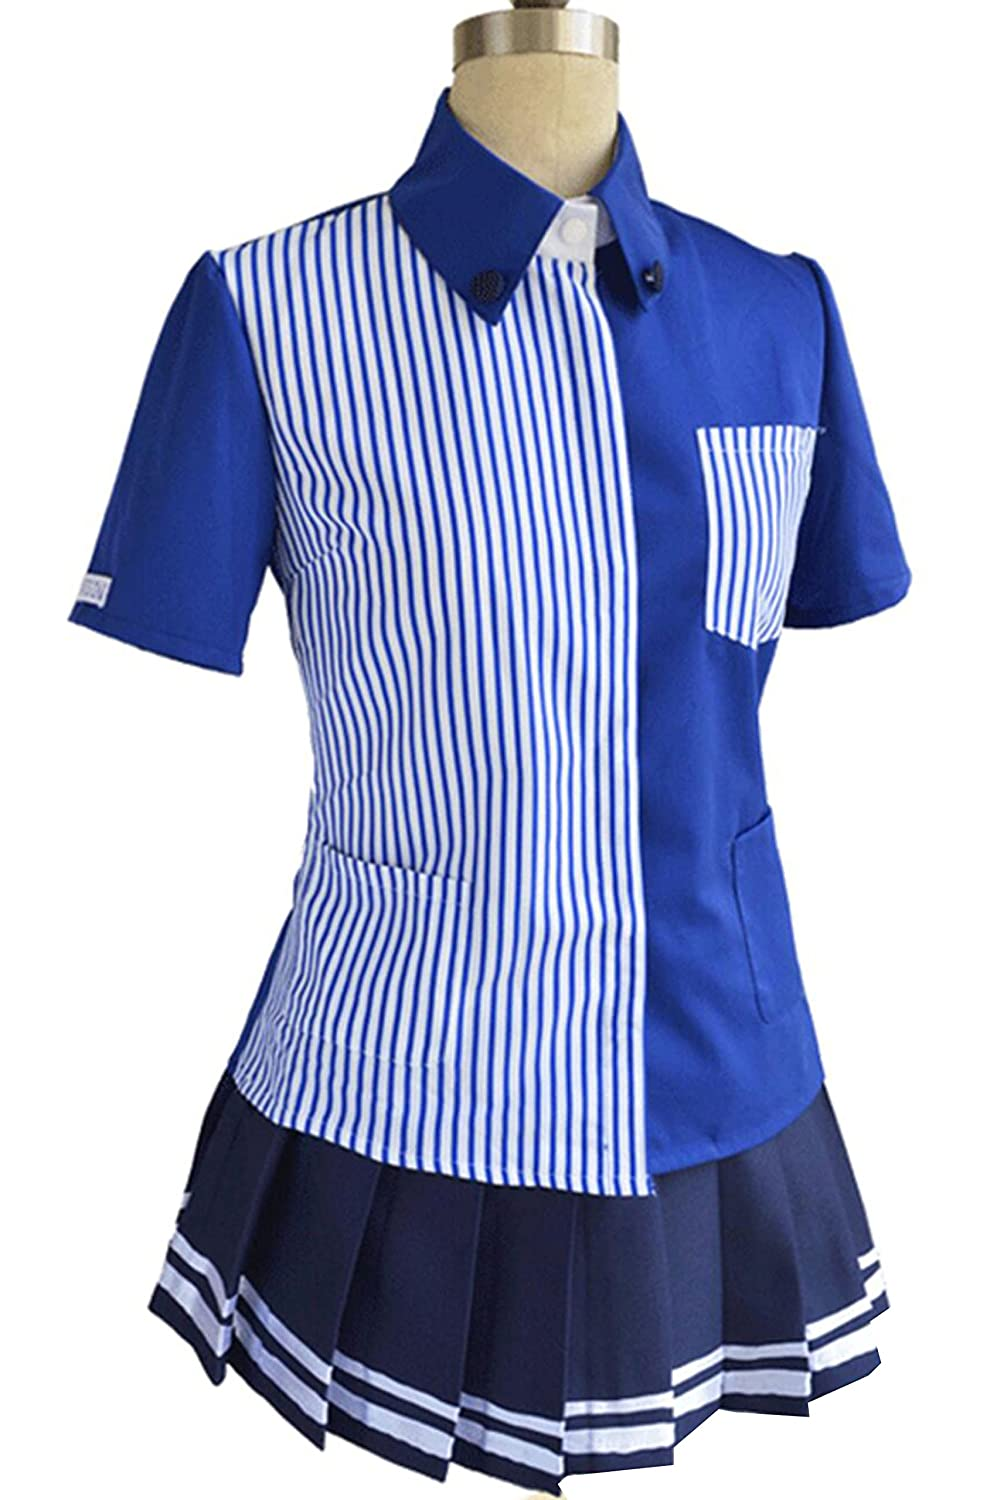 ZYHCOS Women's Short Sleeve bluee White Striped Casual Shirt bluee Skirt